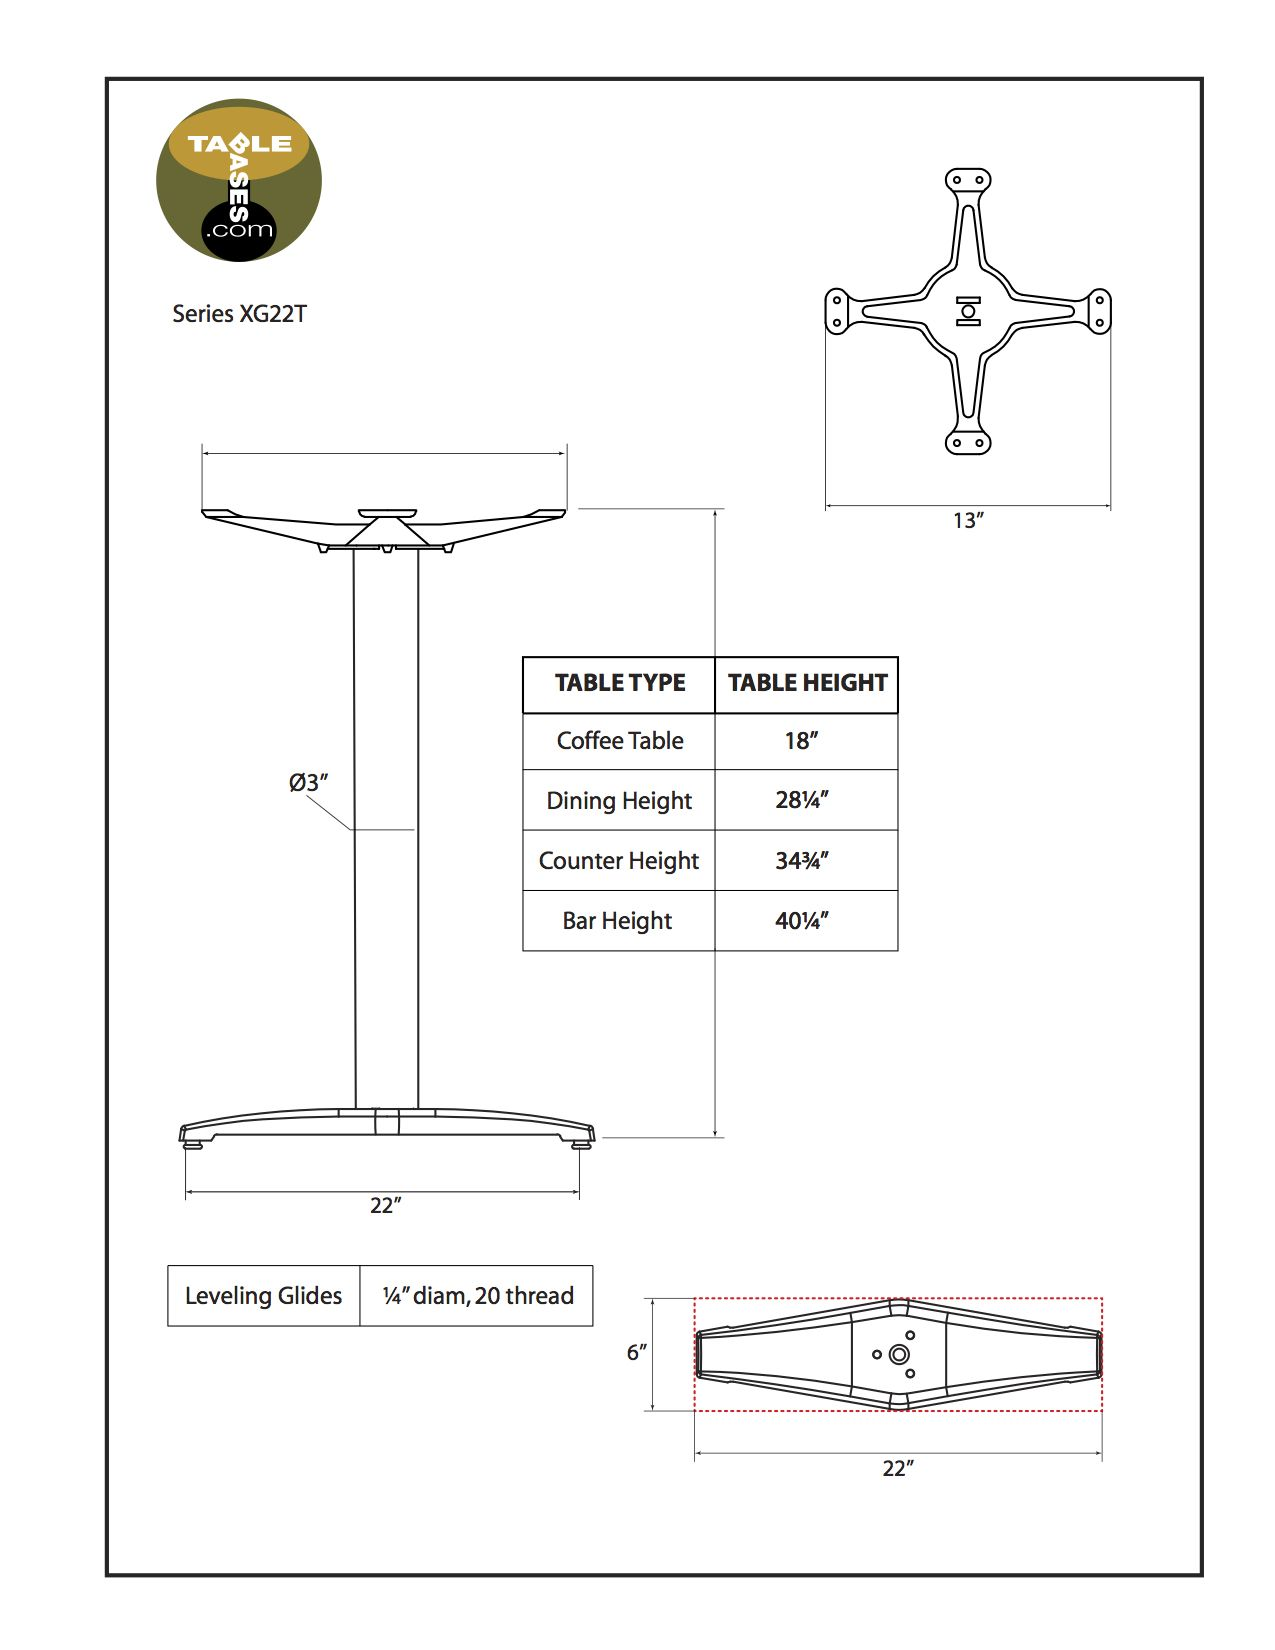 XG22T Black Table Base - Specifications